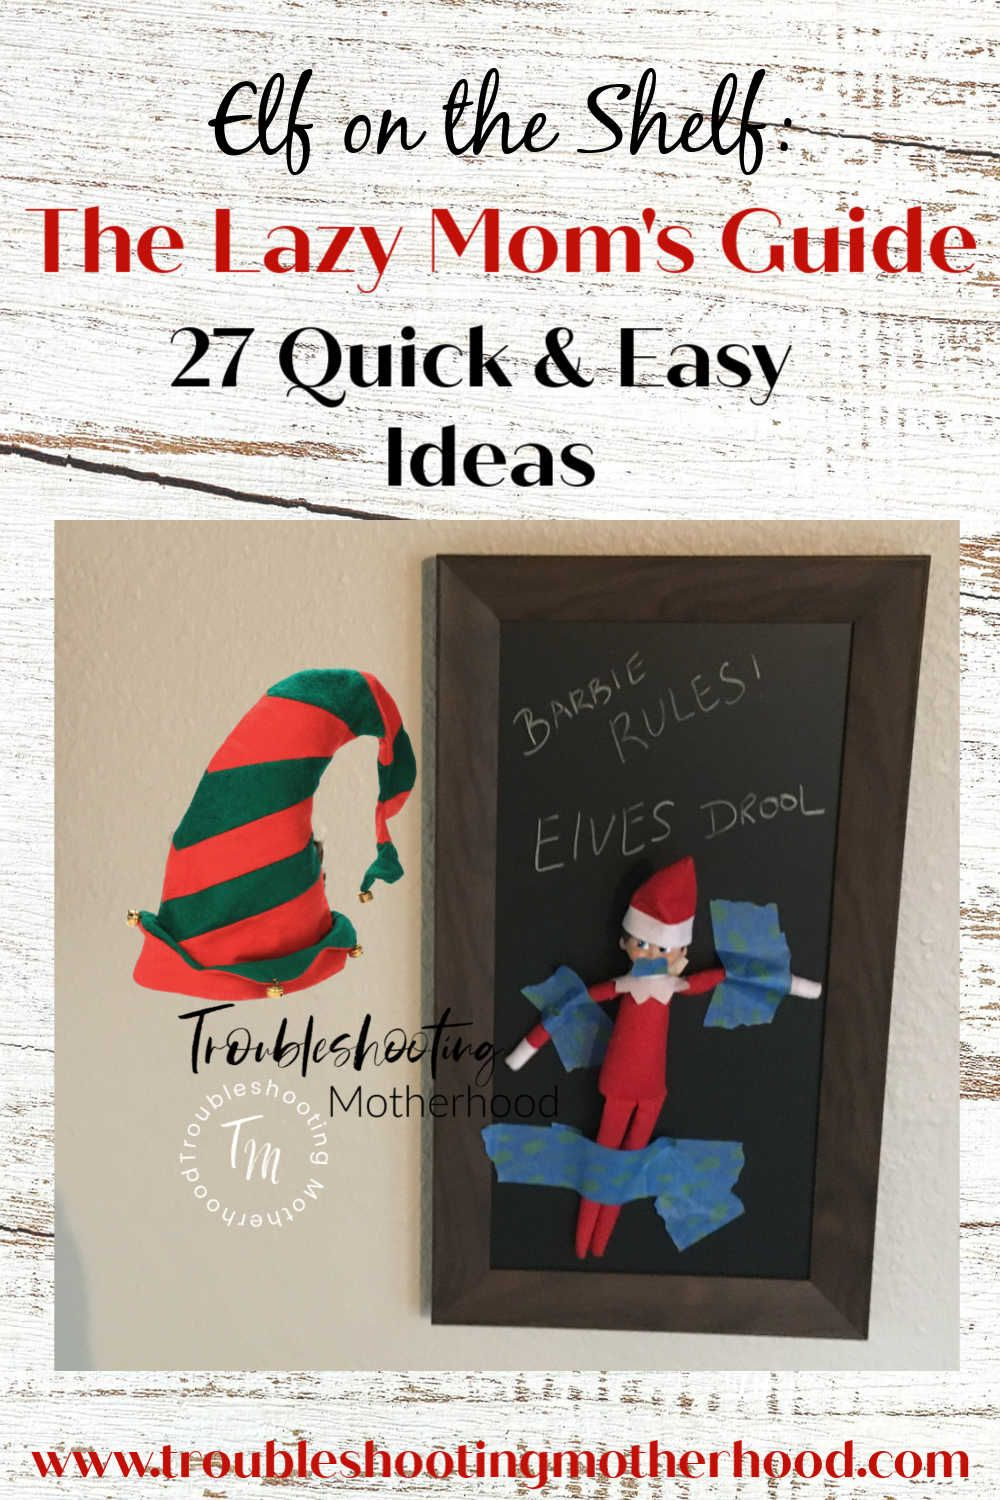 Quick & Easy Ideas for Moving your Elf on the Shelf